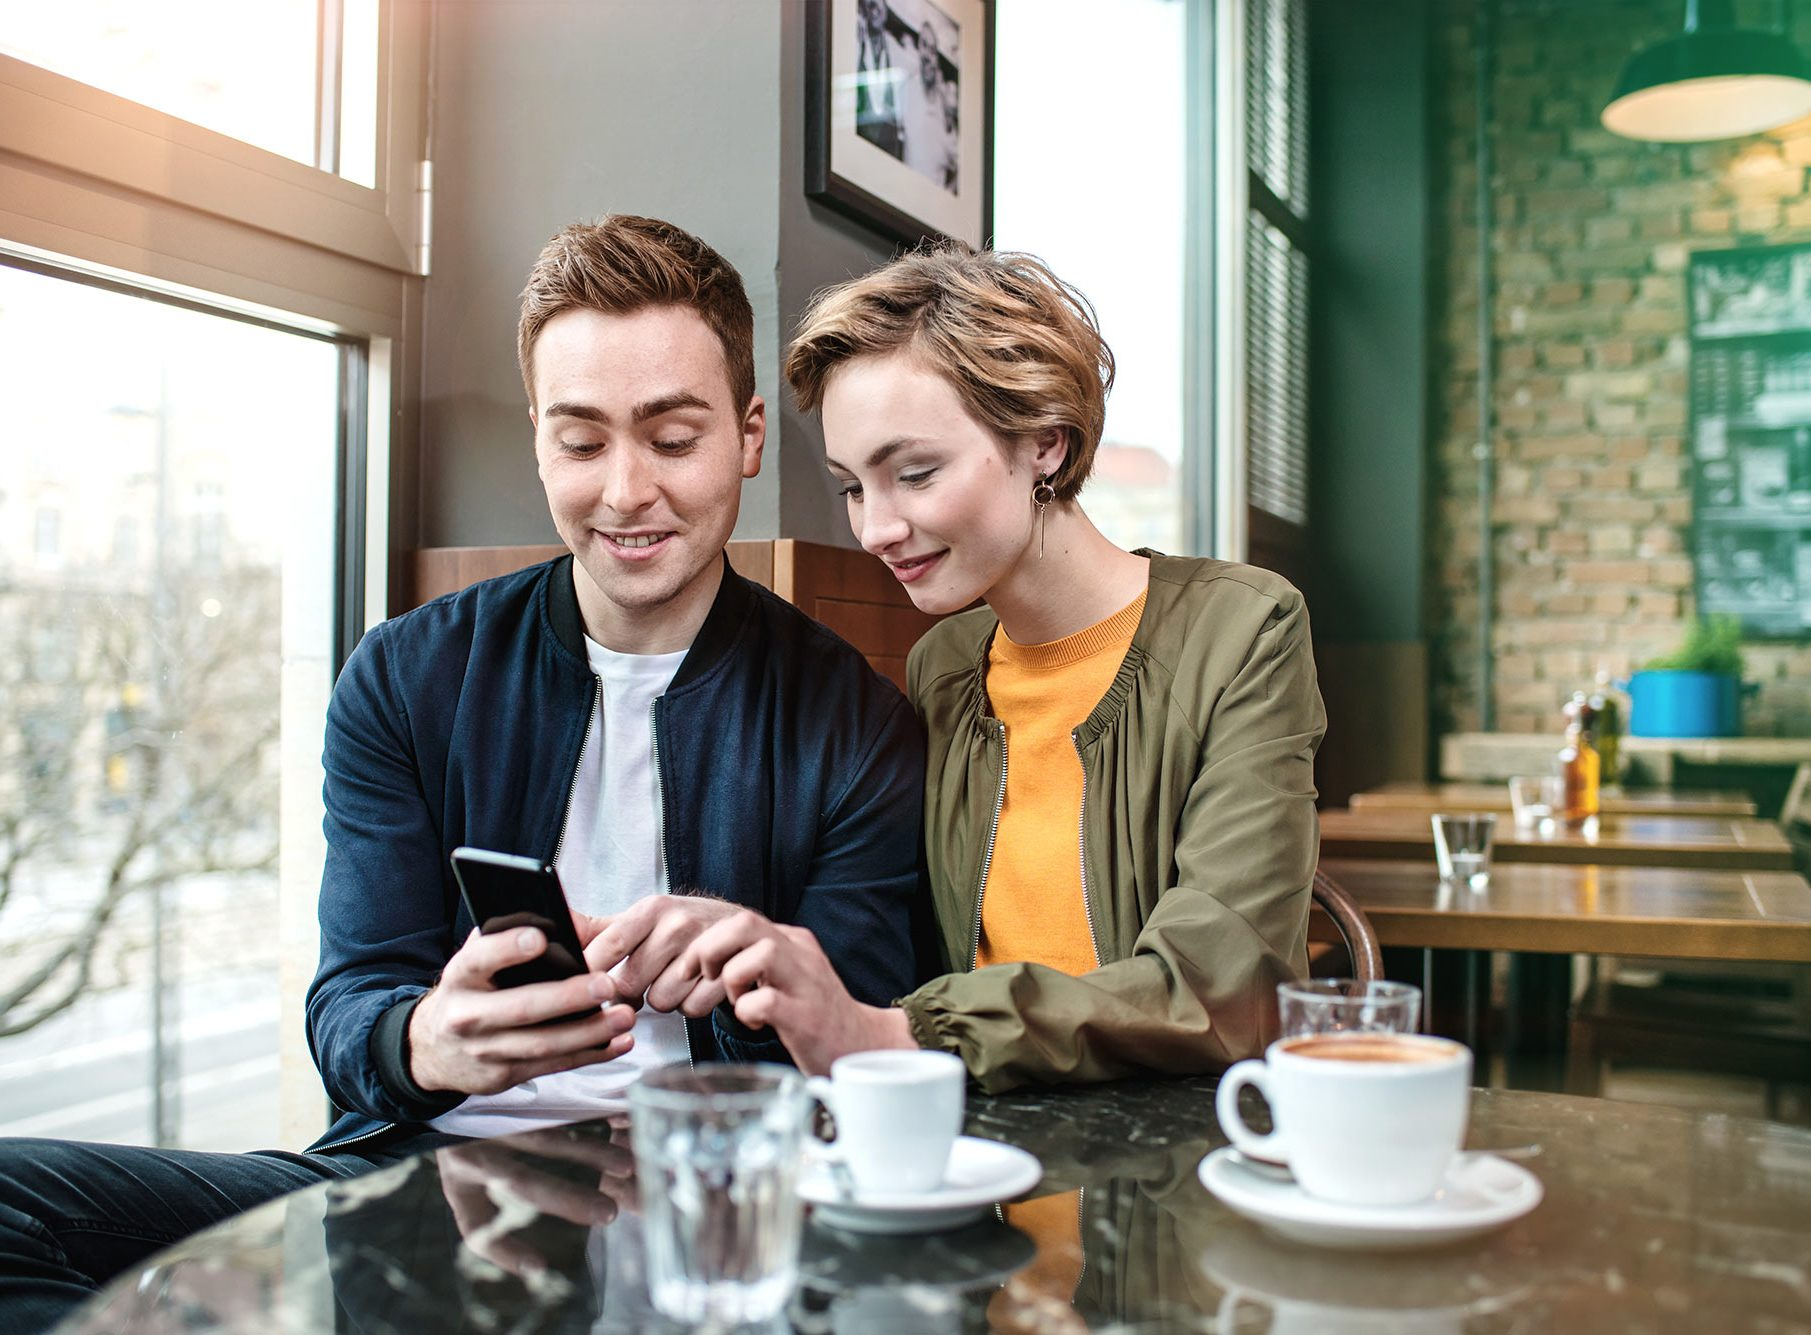 Secure Login VERIMI StartUp Campaign Peoplephotography Young Couple in Cafe